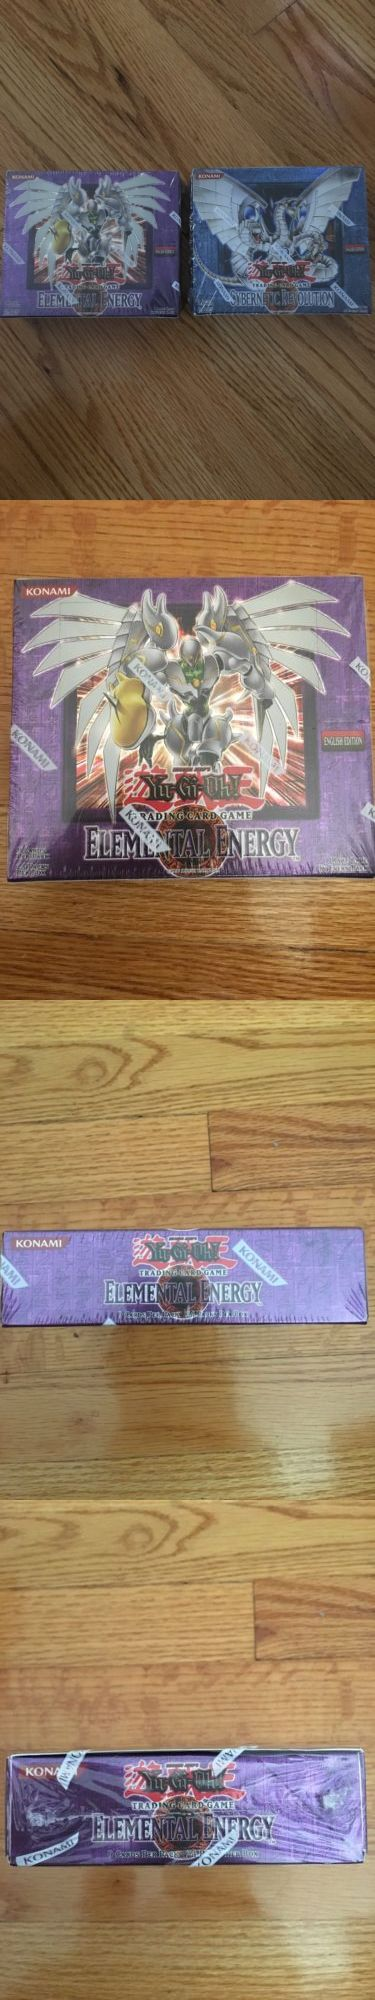 CCG Individual Cards 183454: Yugioh Elemental Energy English Booster Box And Cybernetic Revolution Unlimited -> BUY IT NOW ONLY: $210 on eBay!